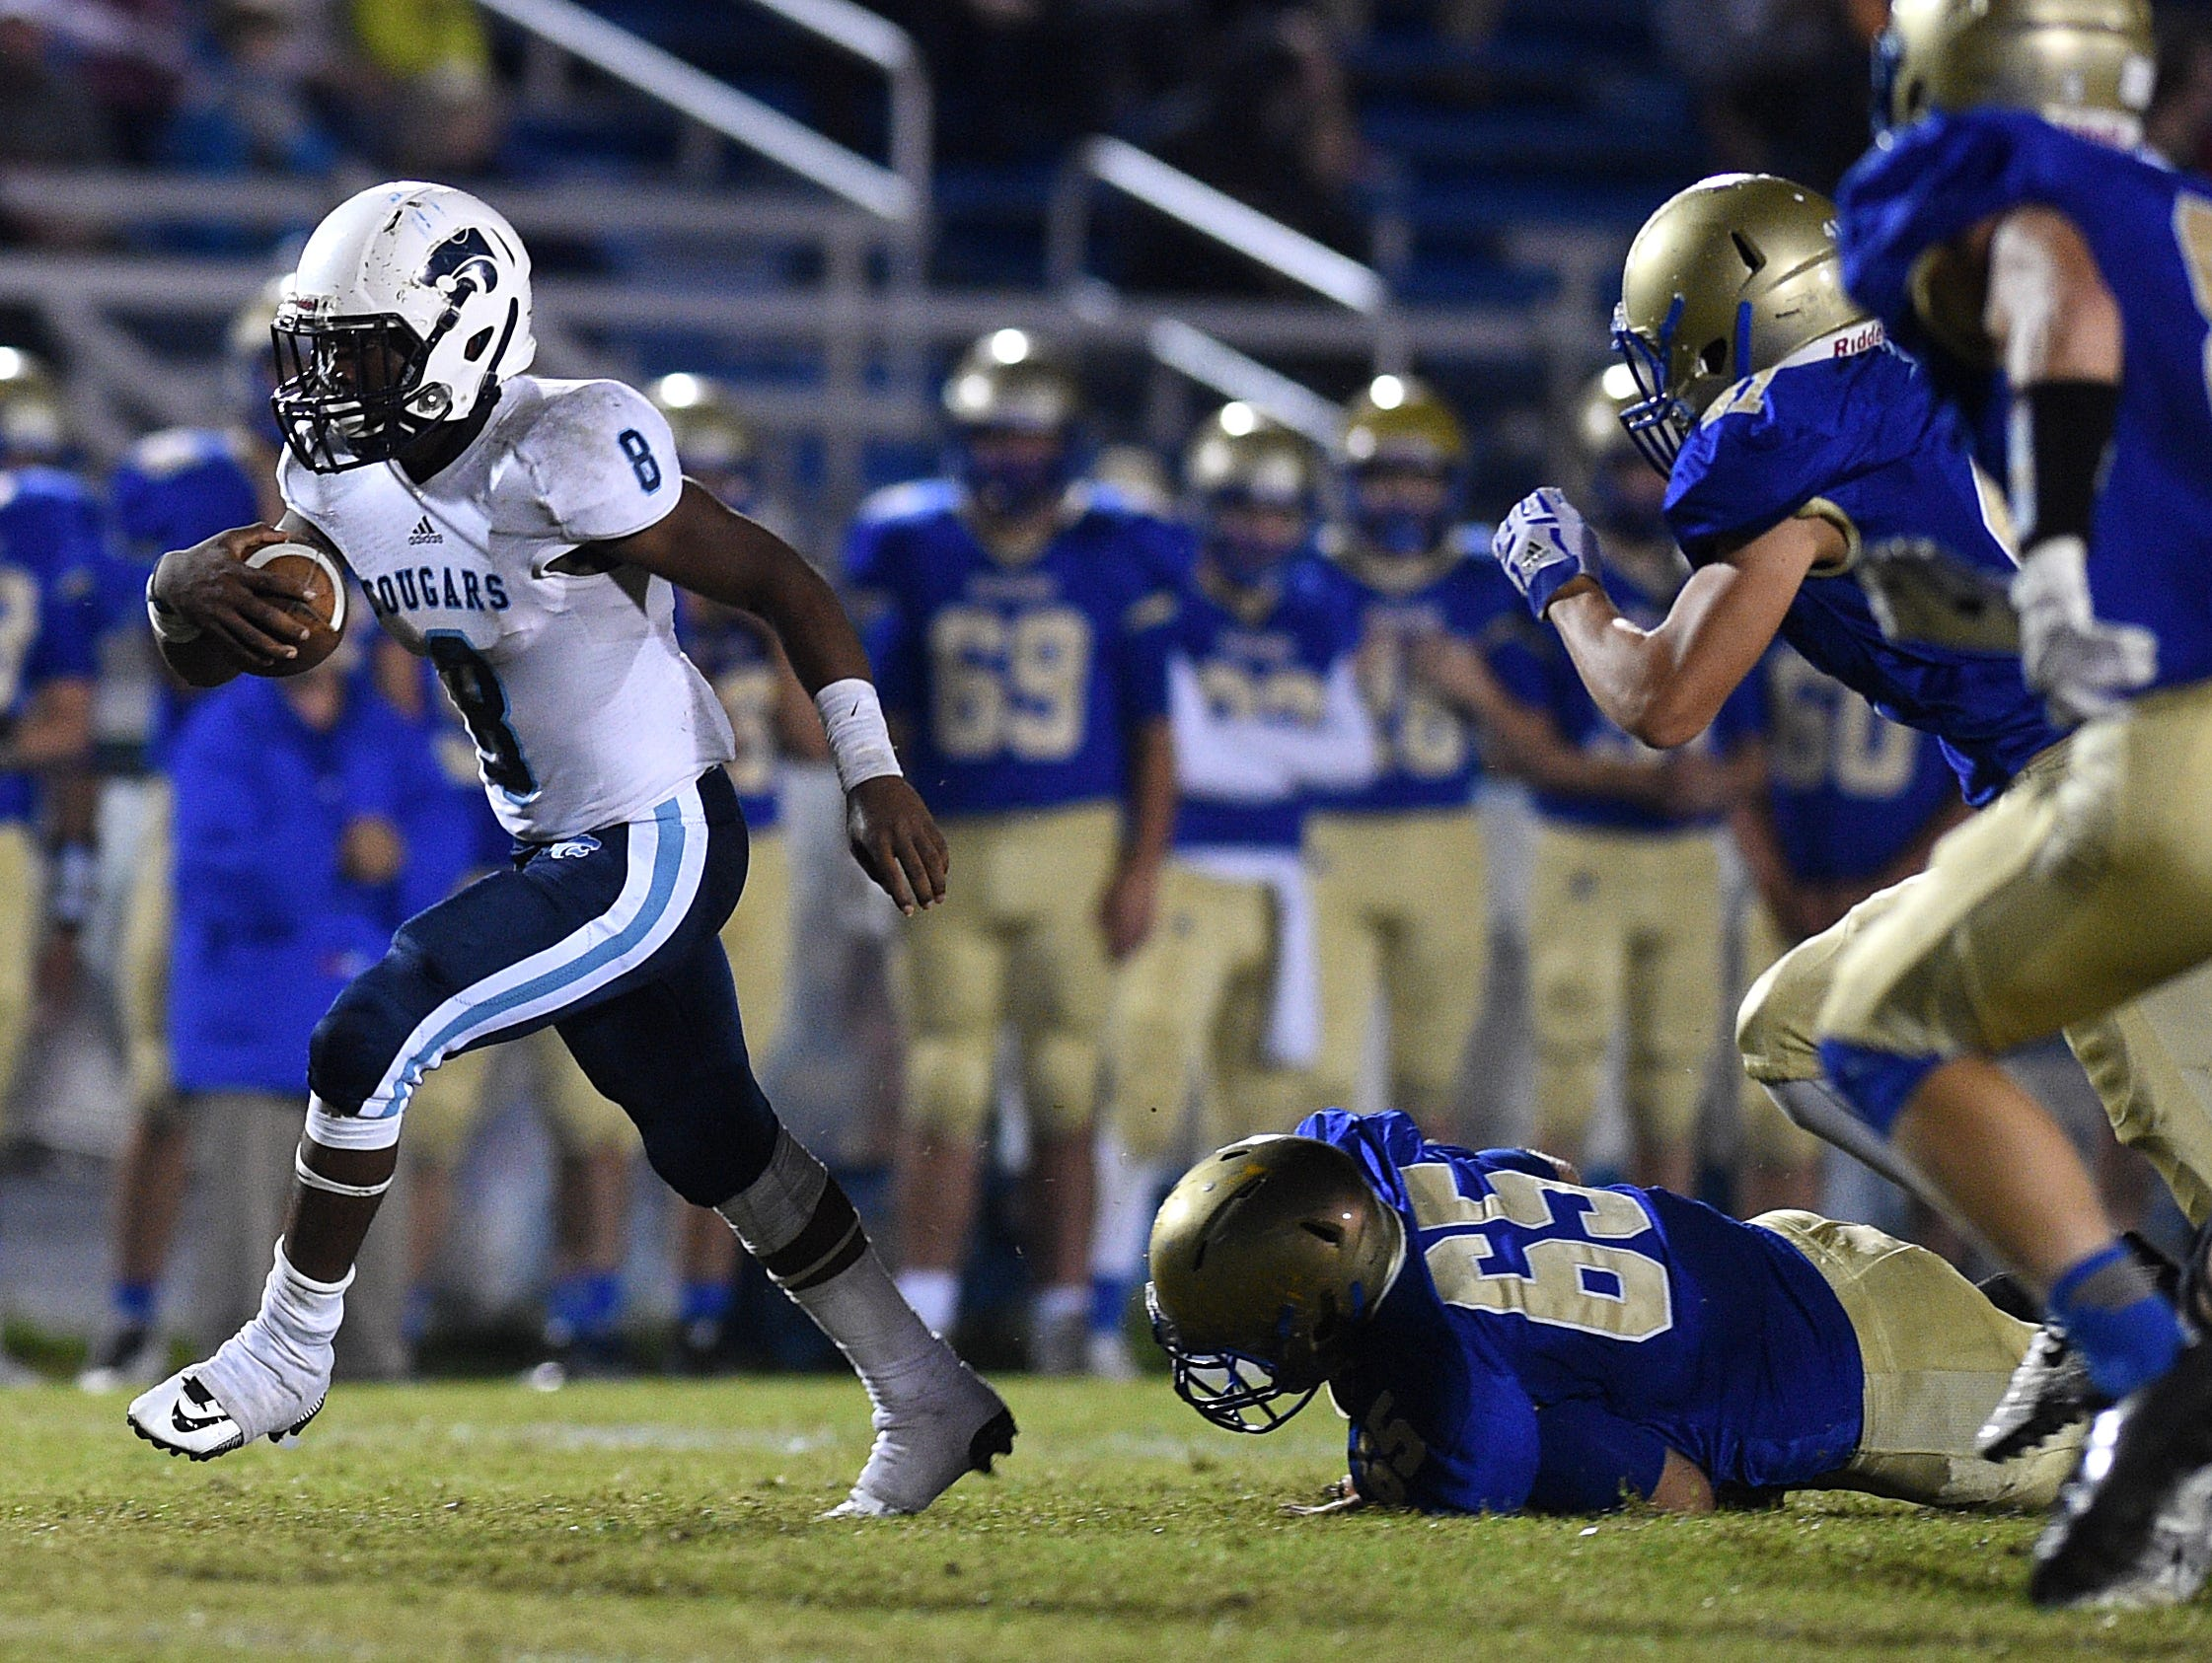 Centennial running back Mondu Sawyers (8) breaks away from Brentwood's defense during a game at Brentwood on Friday.